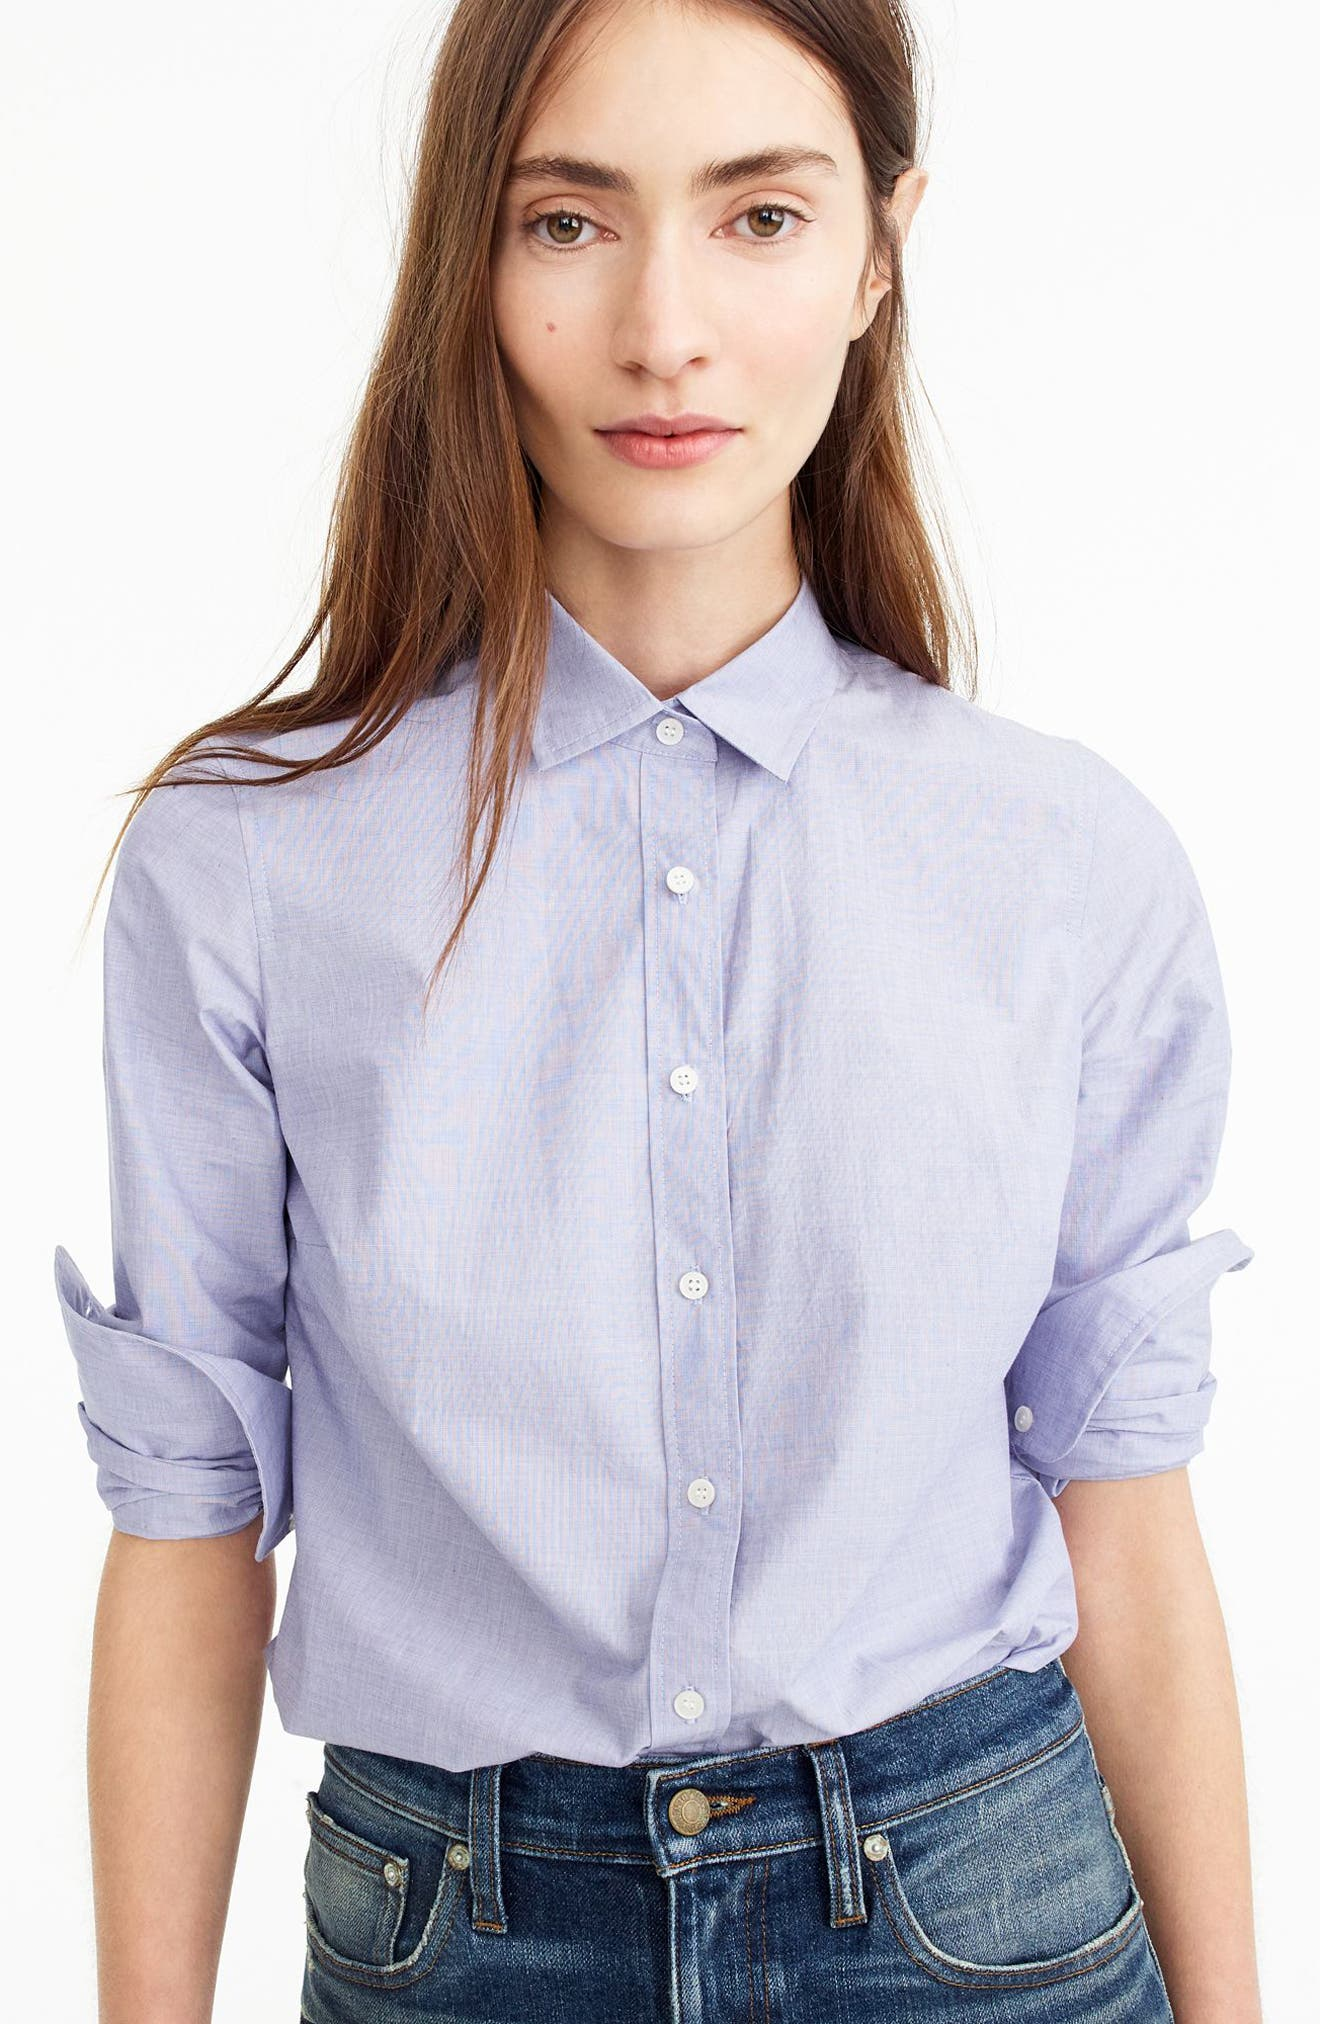 J.Crew New Perfect Shirt,                         Main,                         color, Peri